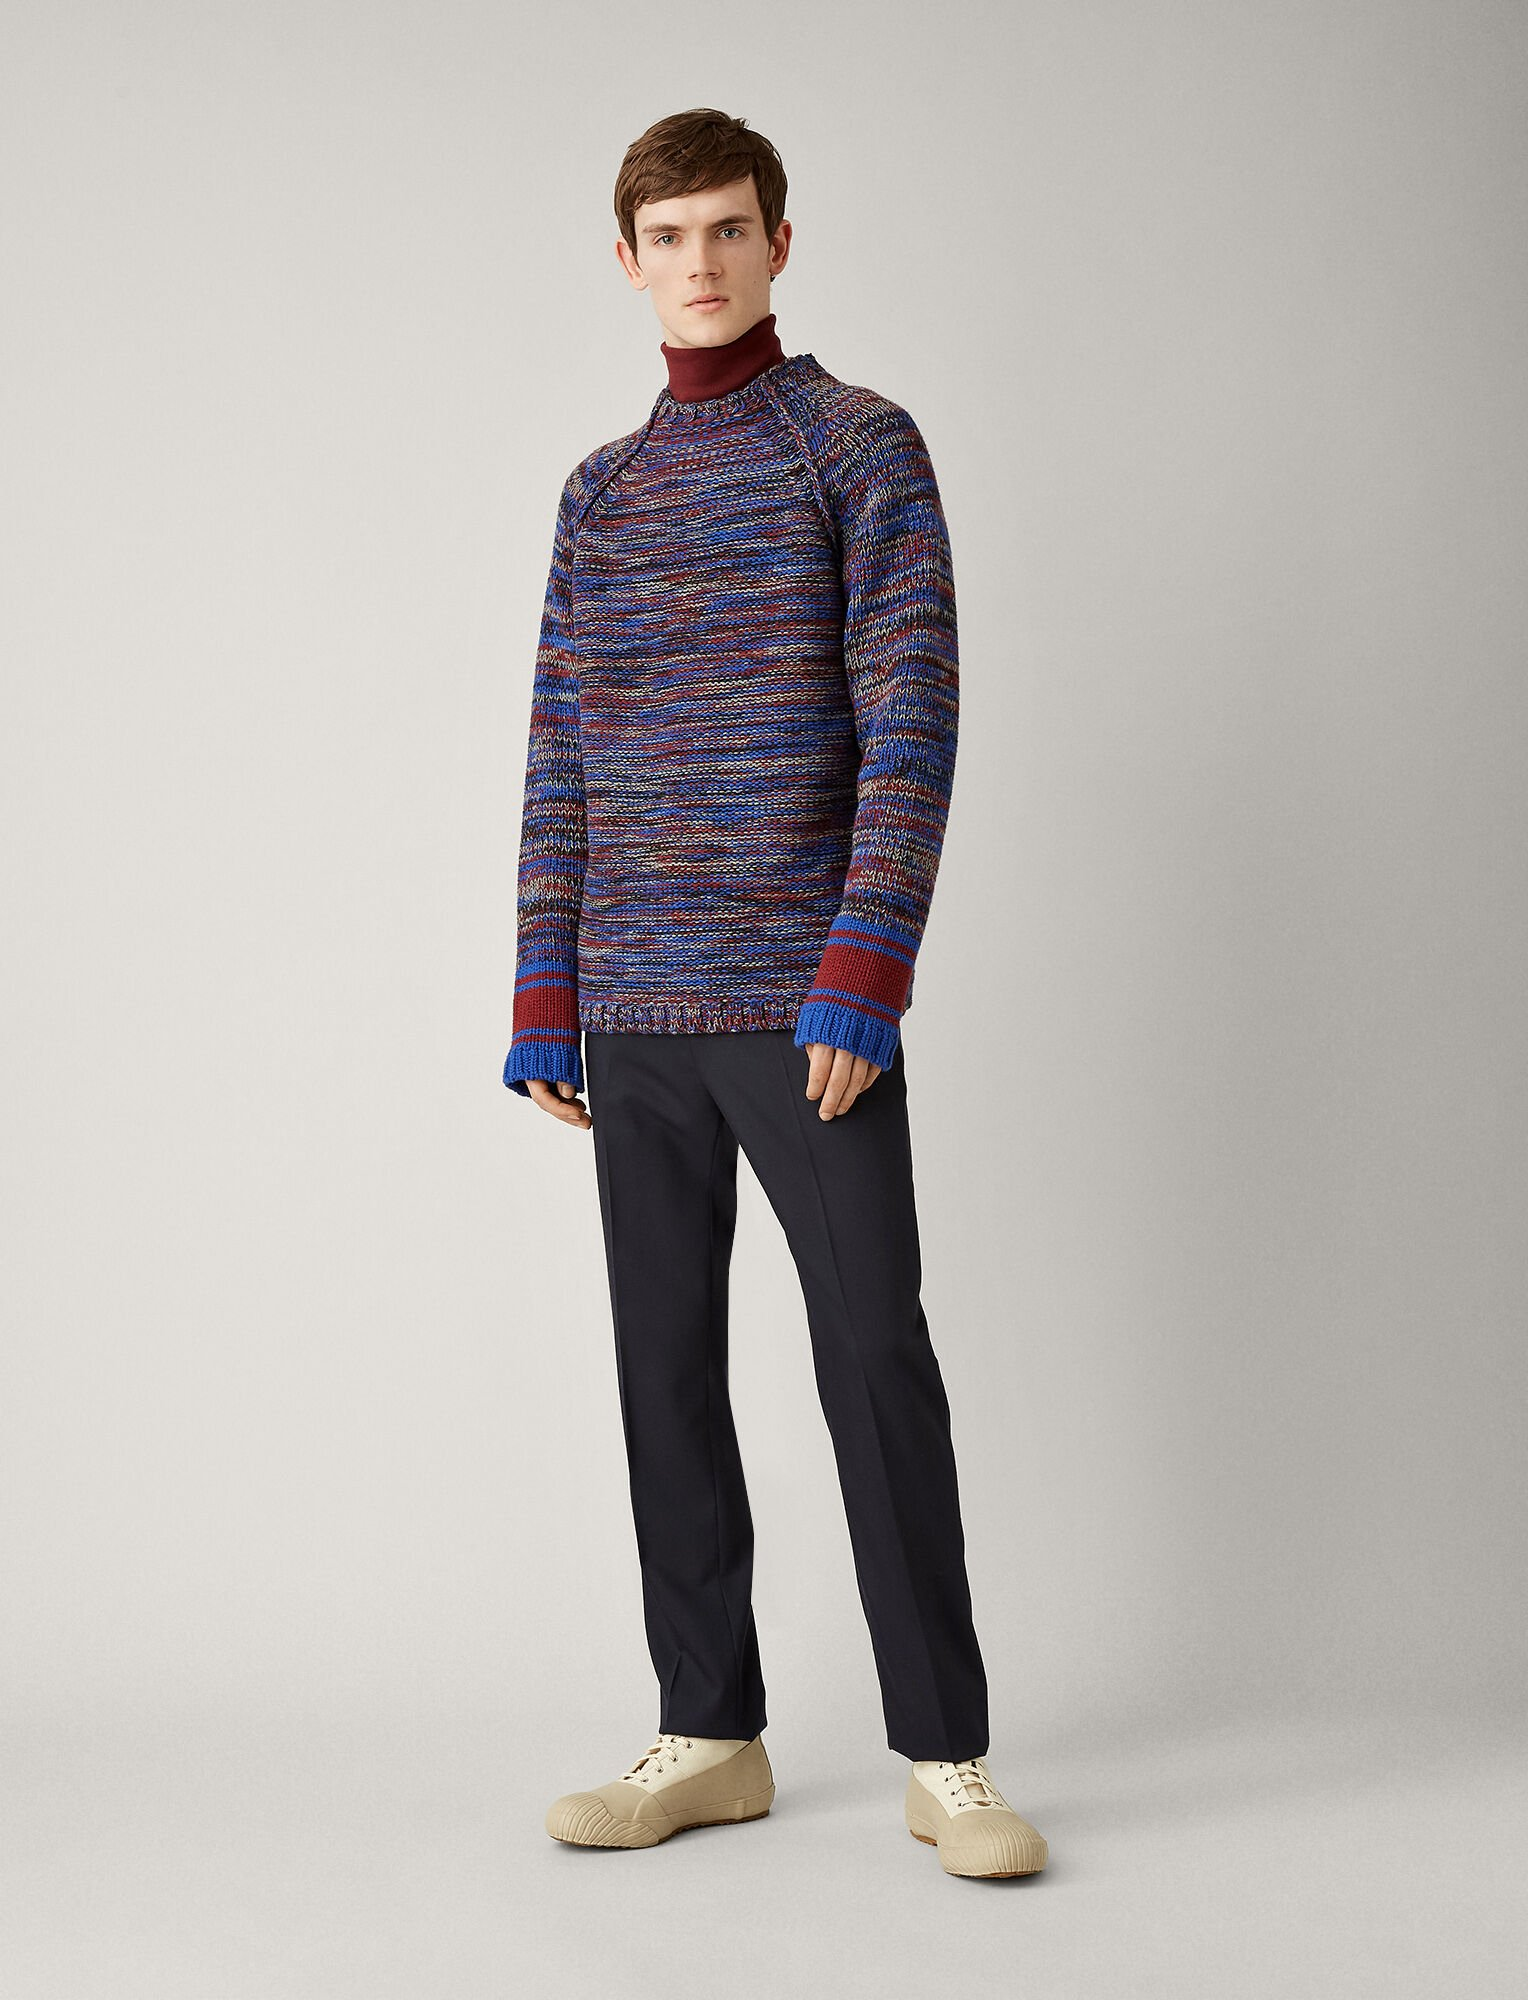 Joseph, Oversized Sweater Chunky Mouline Knit, in BLUE COMBO